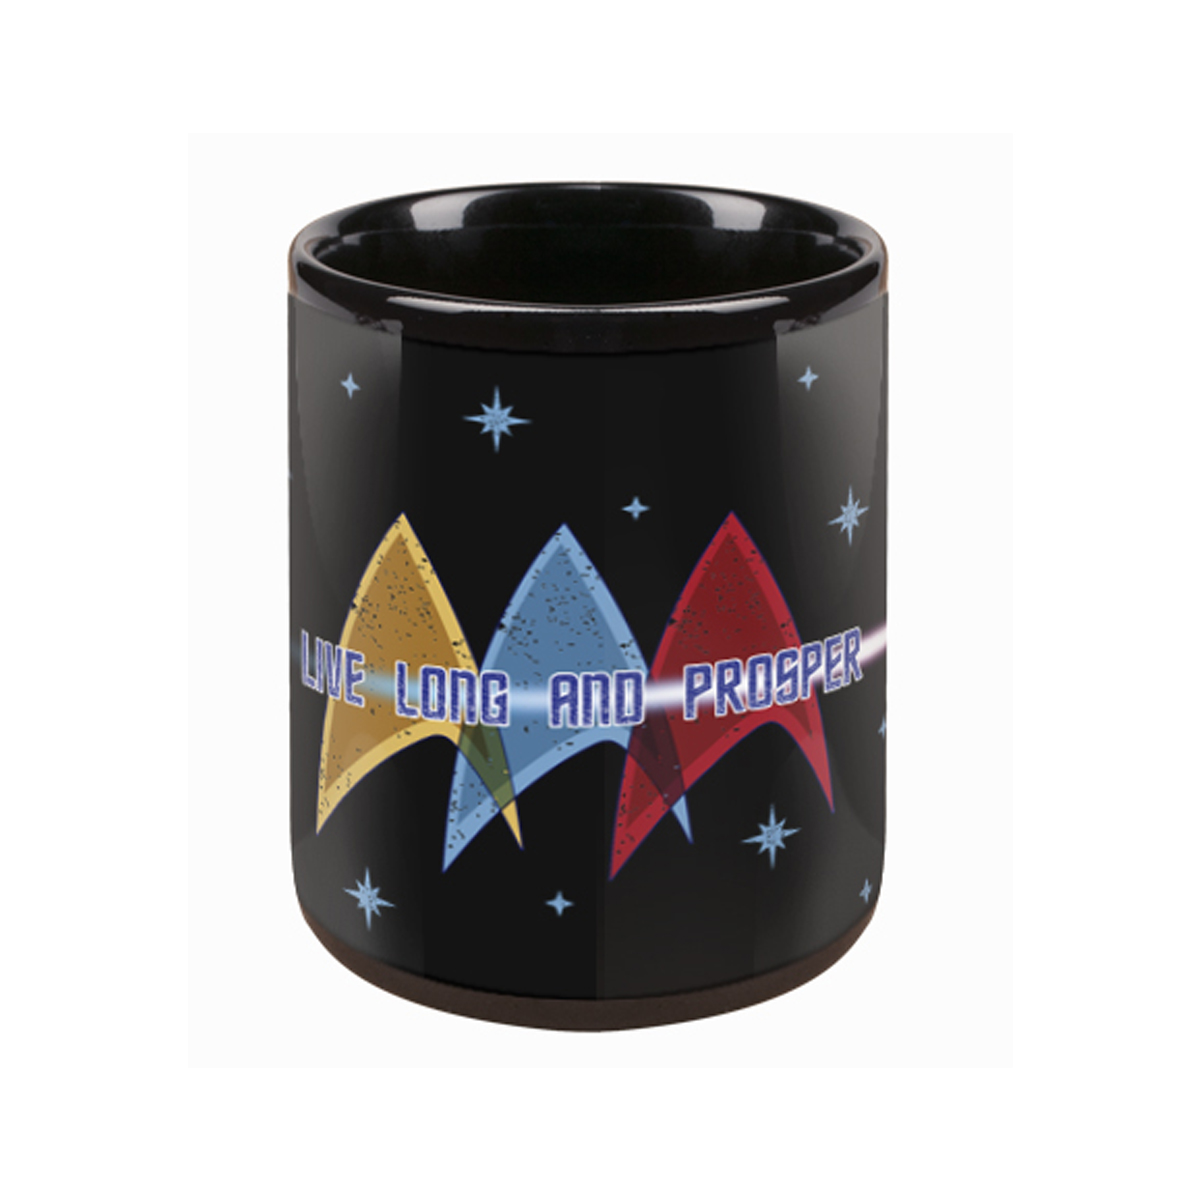 Star Trek Live Long and Prosper Mug